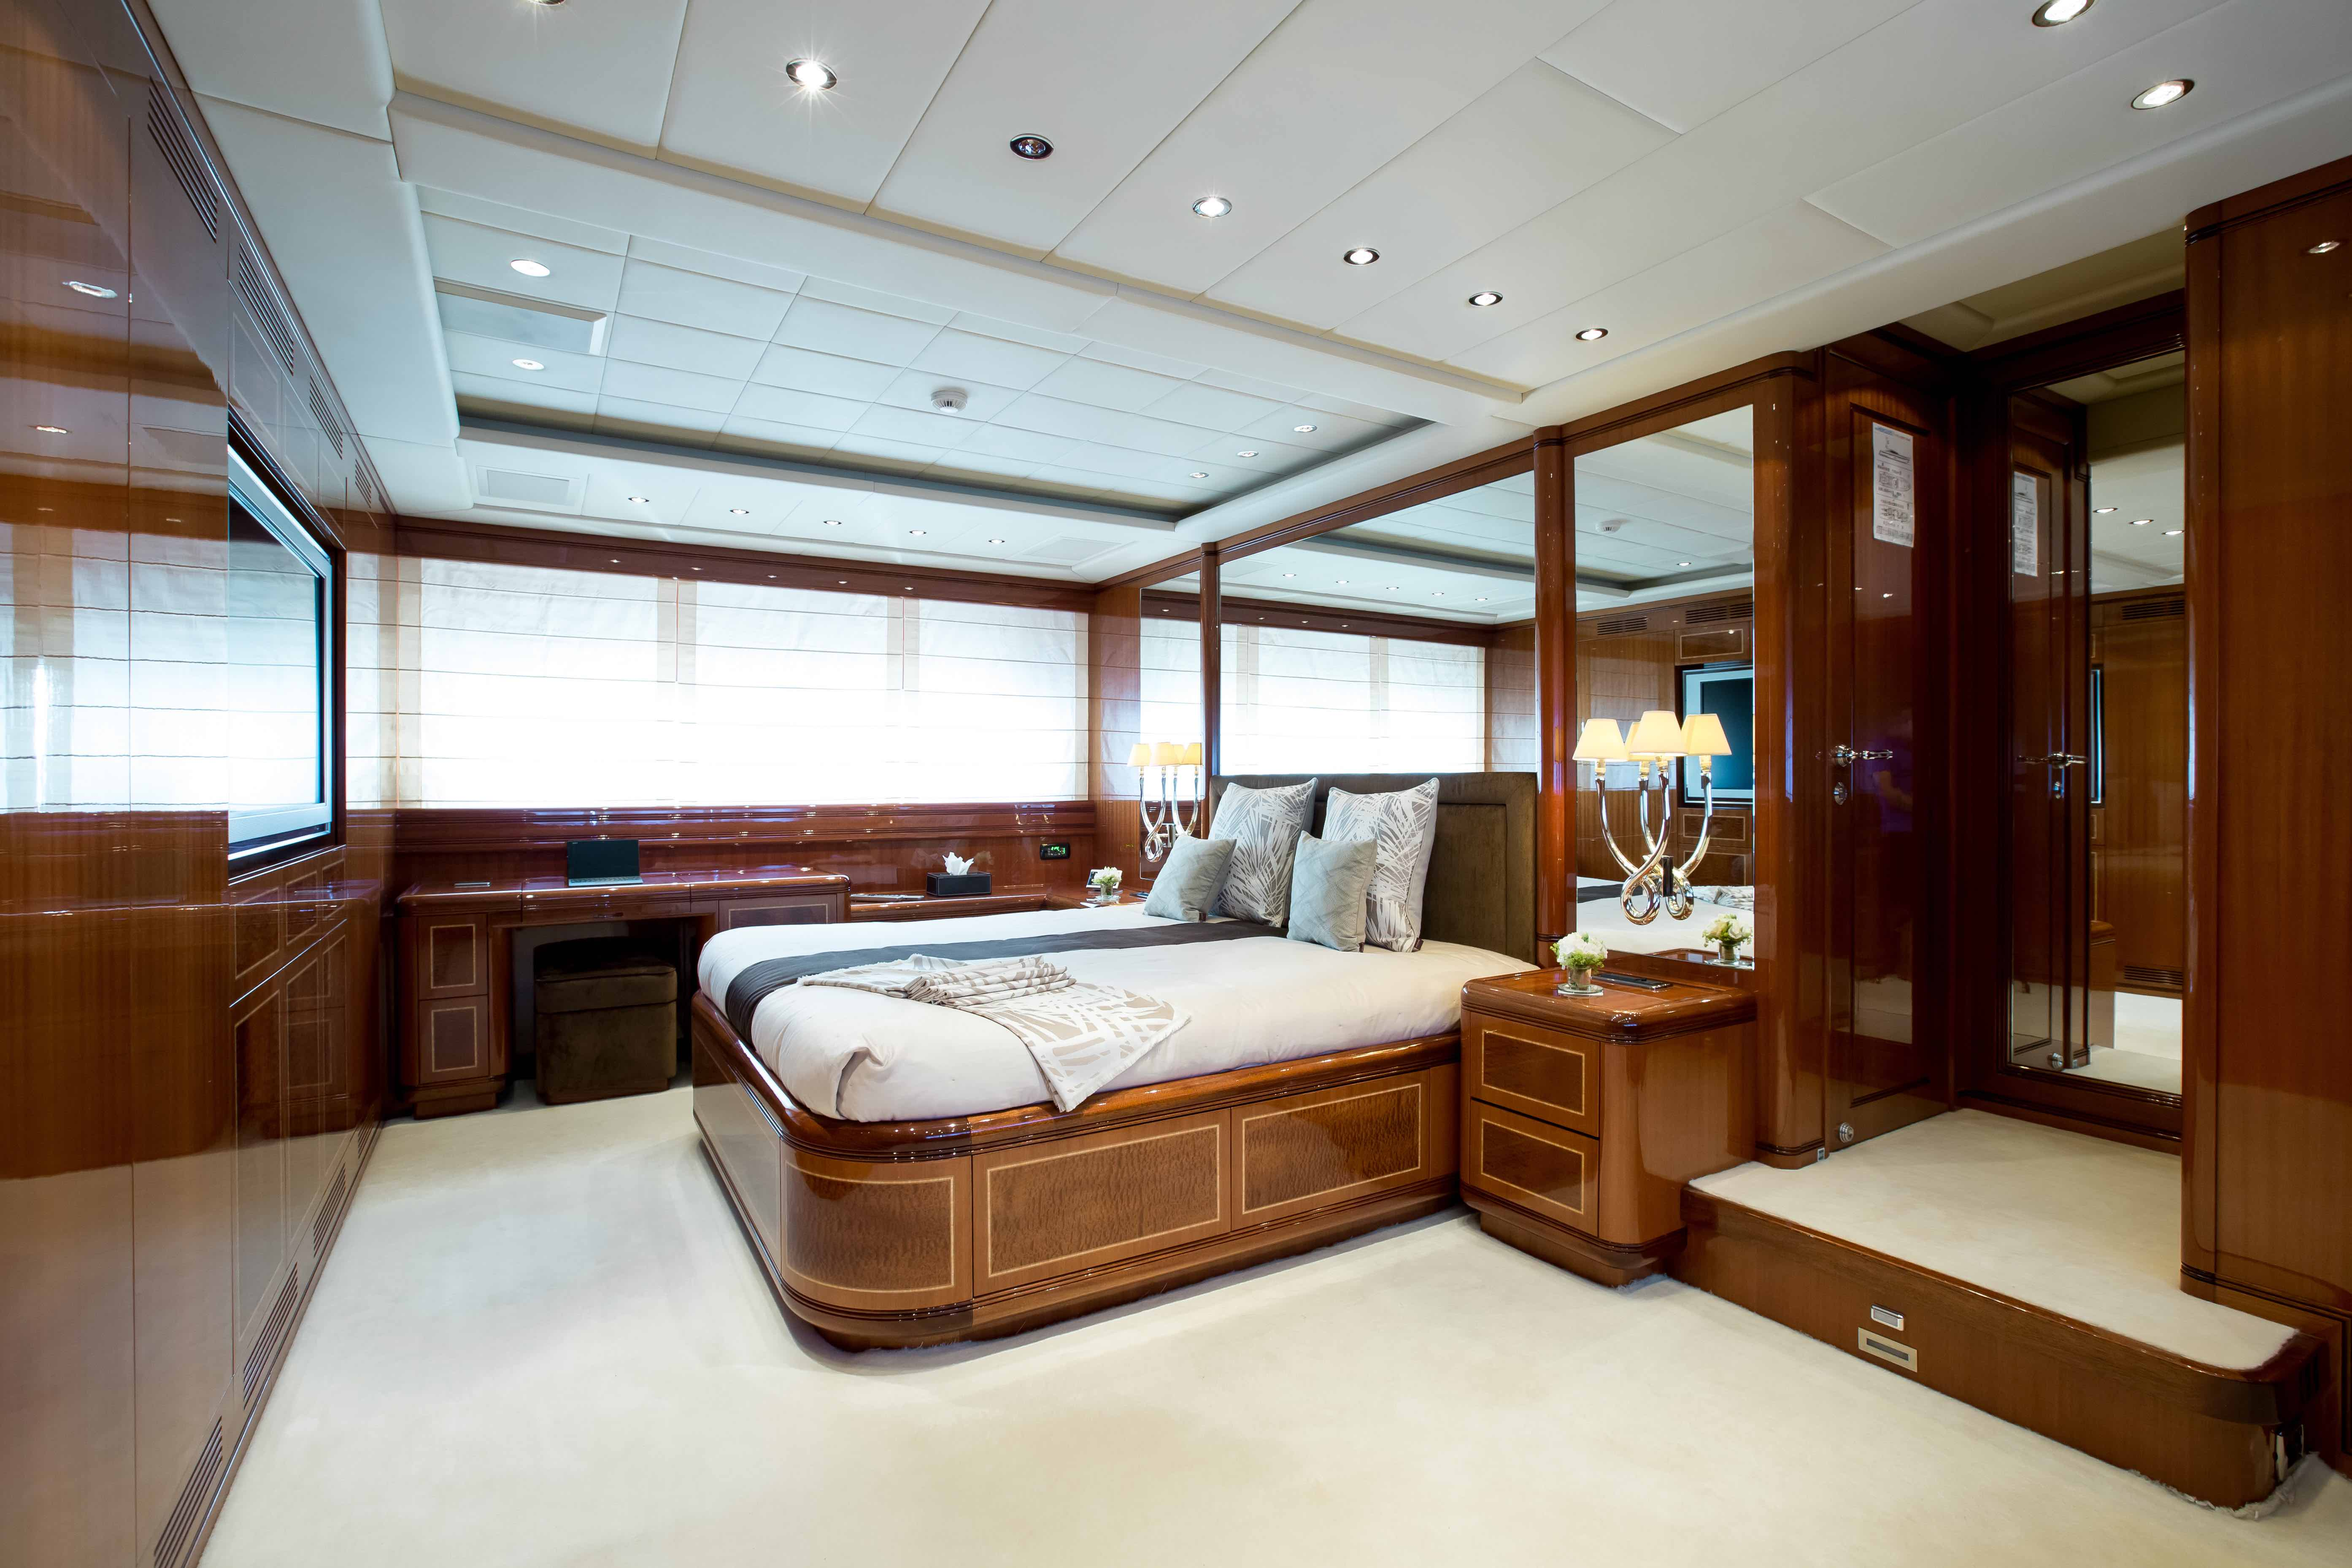 Hercules - Yacht for charter - bedroom